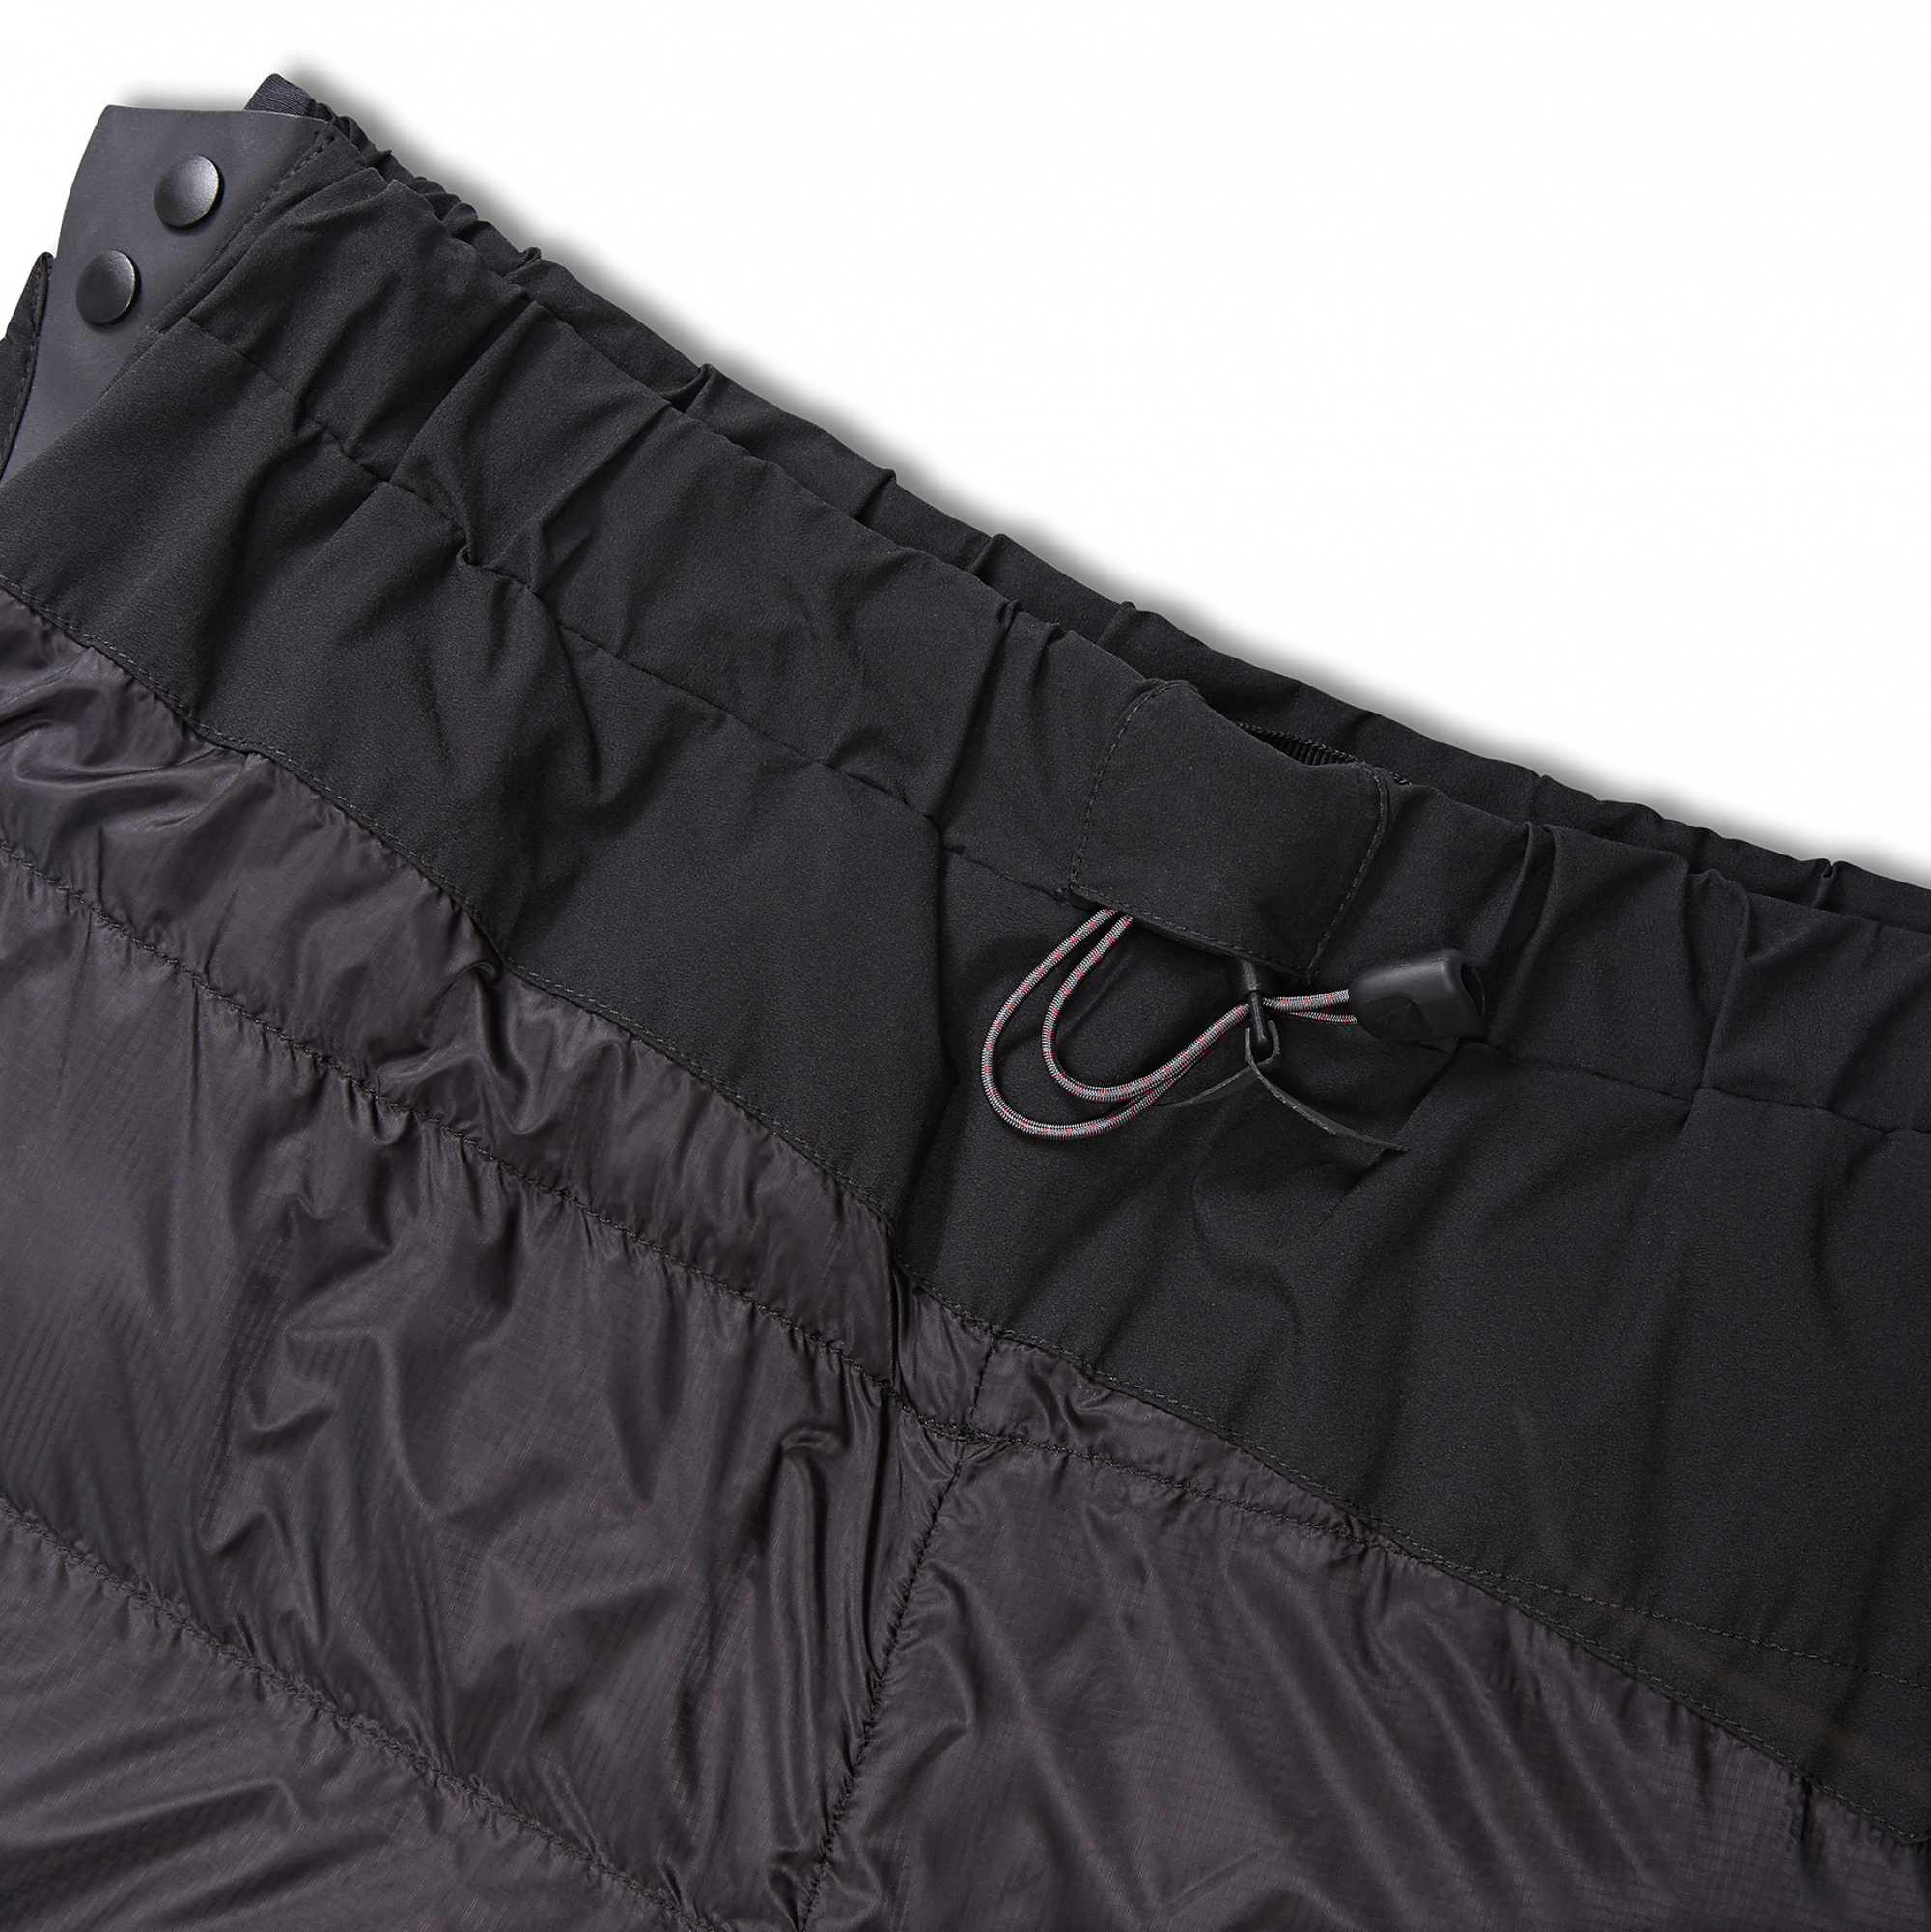 Big product image of Unisex Heidrun 2.0 Shorts